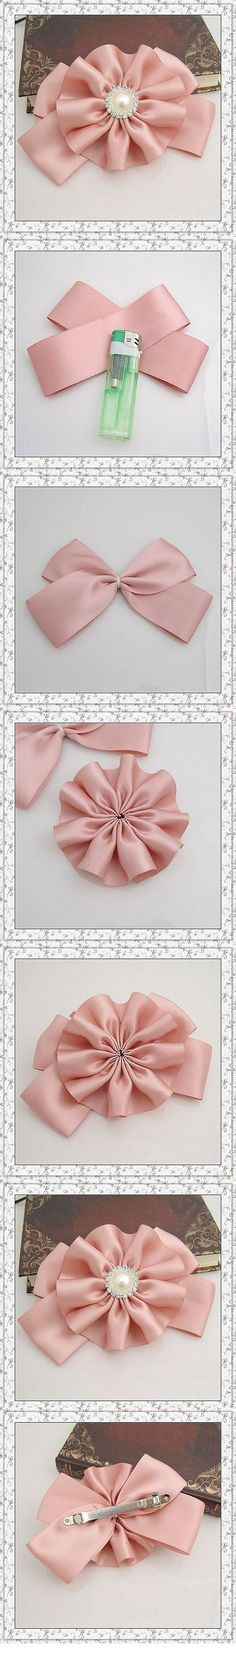 Ribbon flower applique